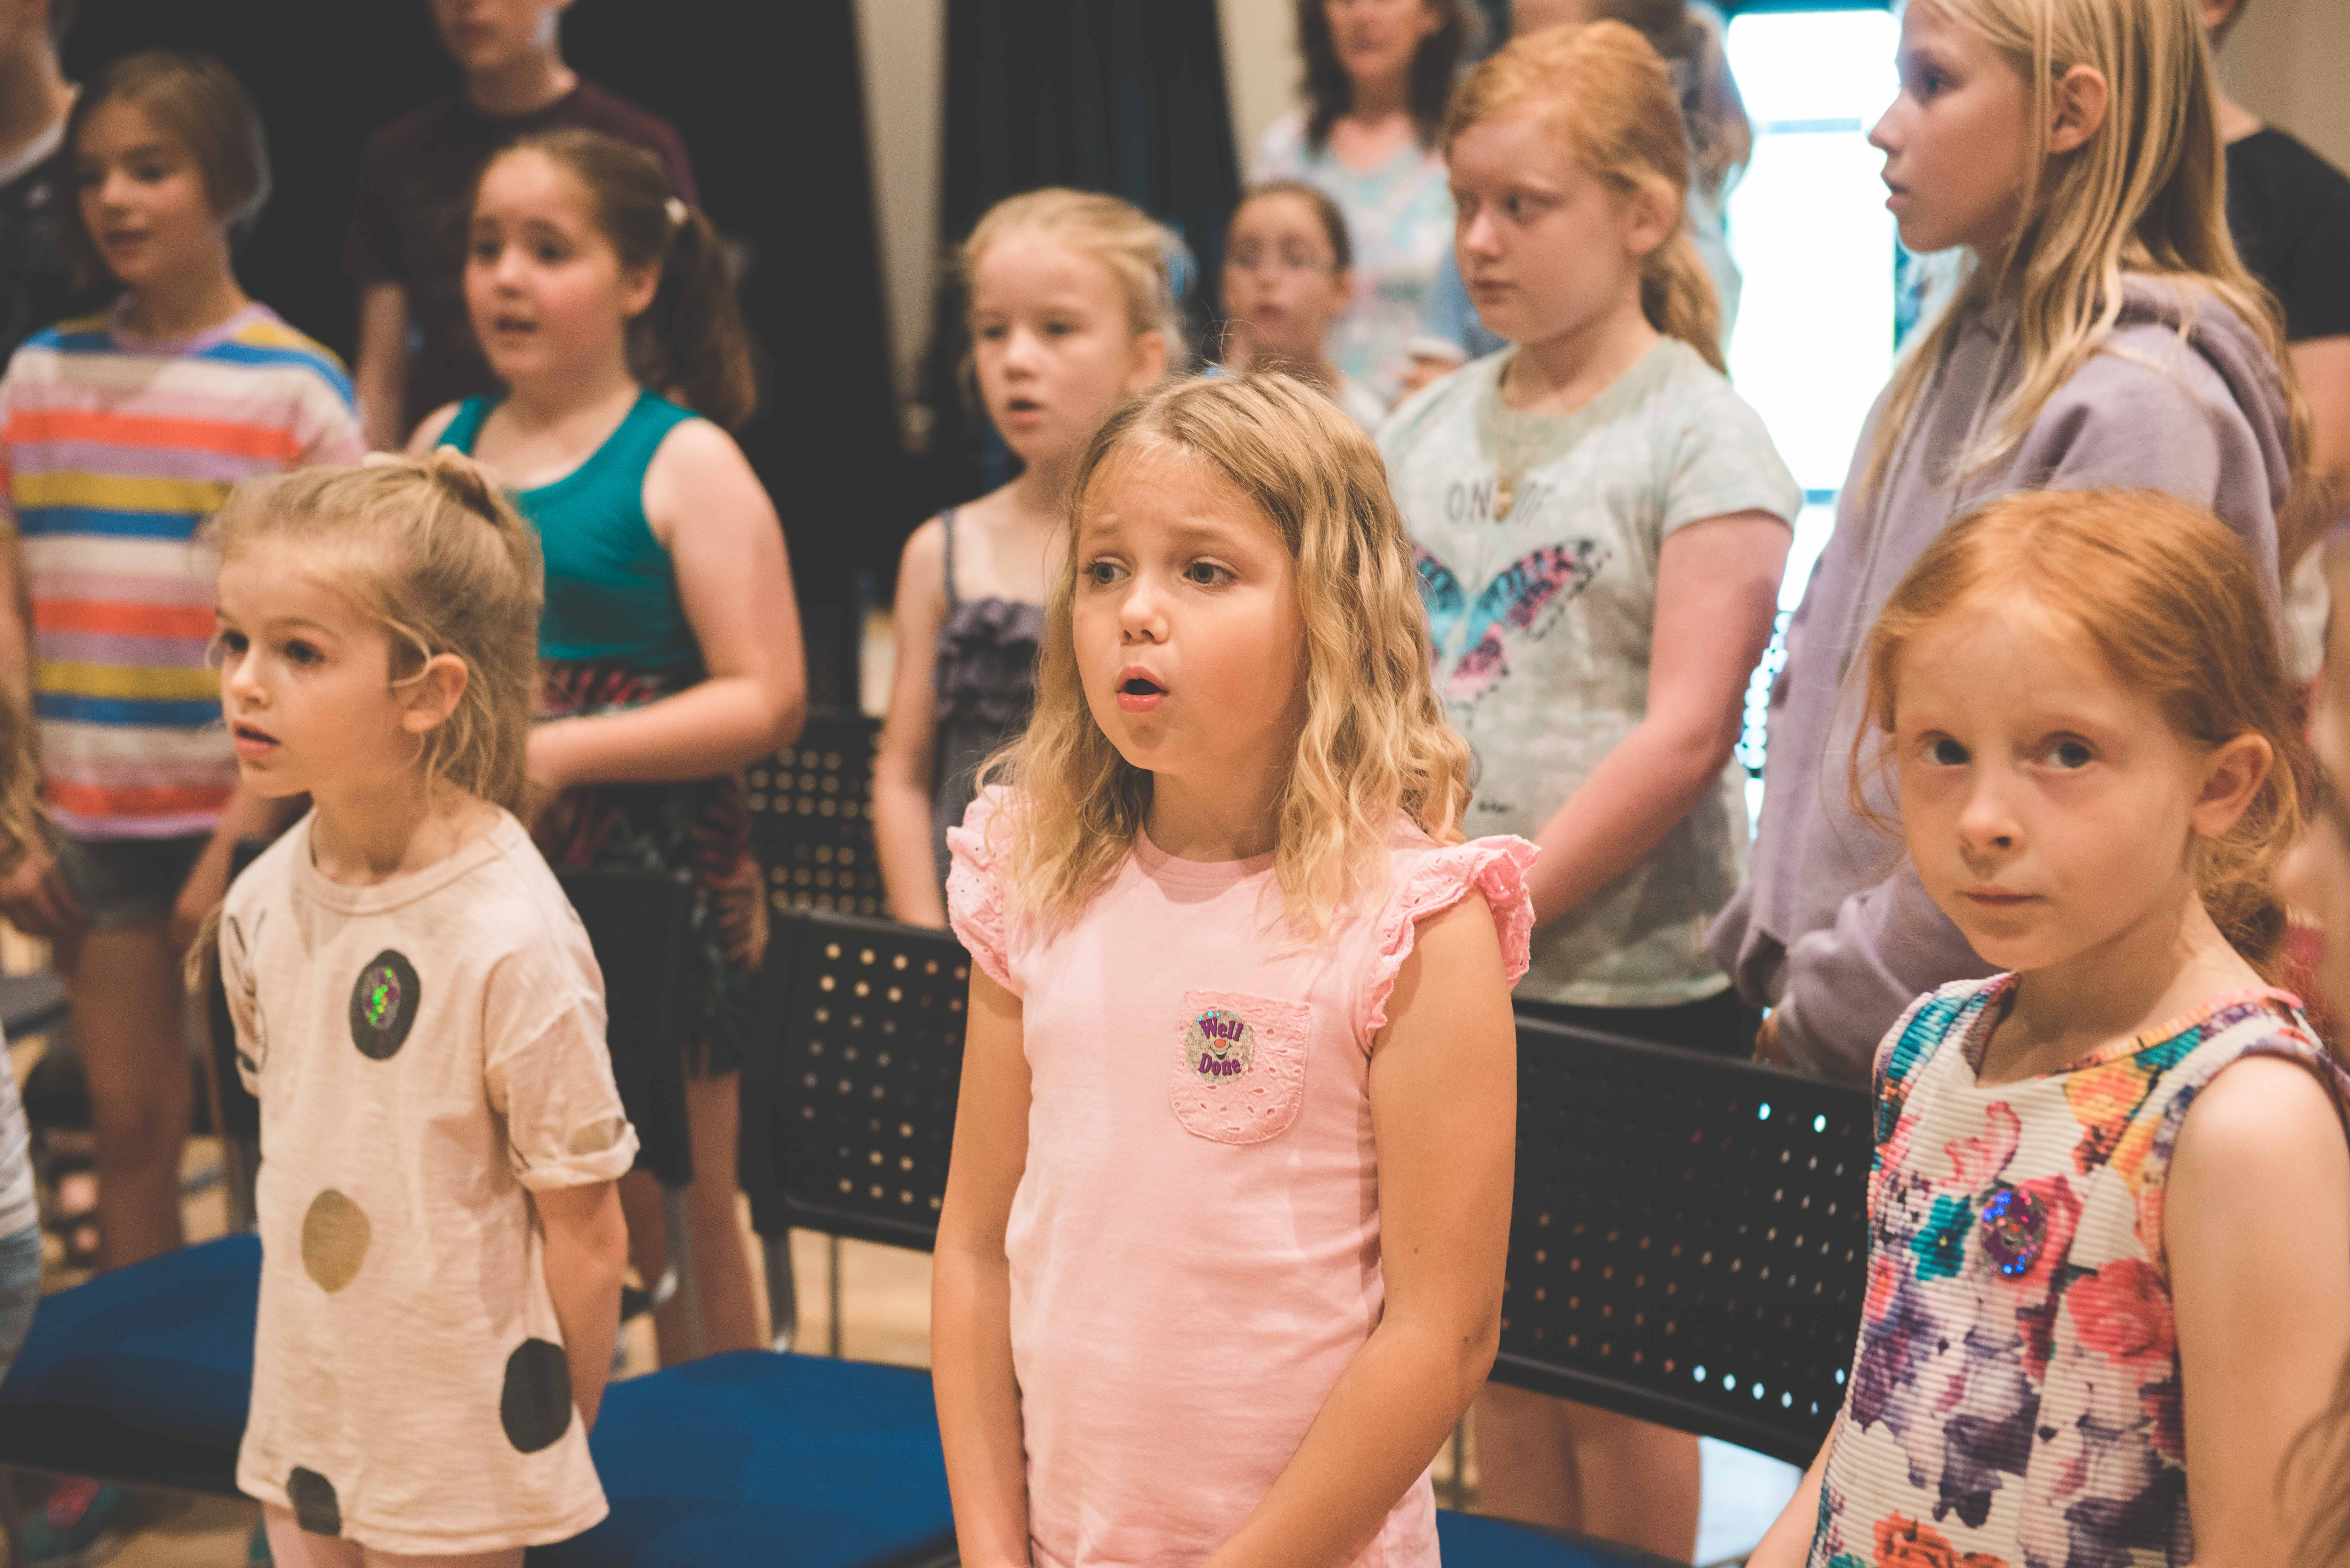 photo of young girl singing in the middle of a group of students